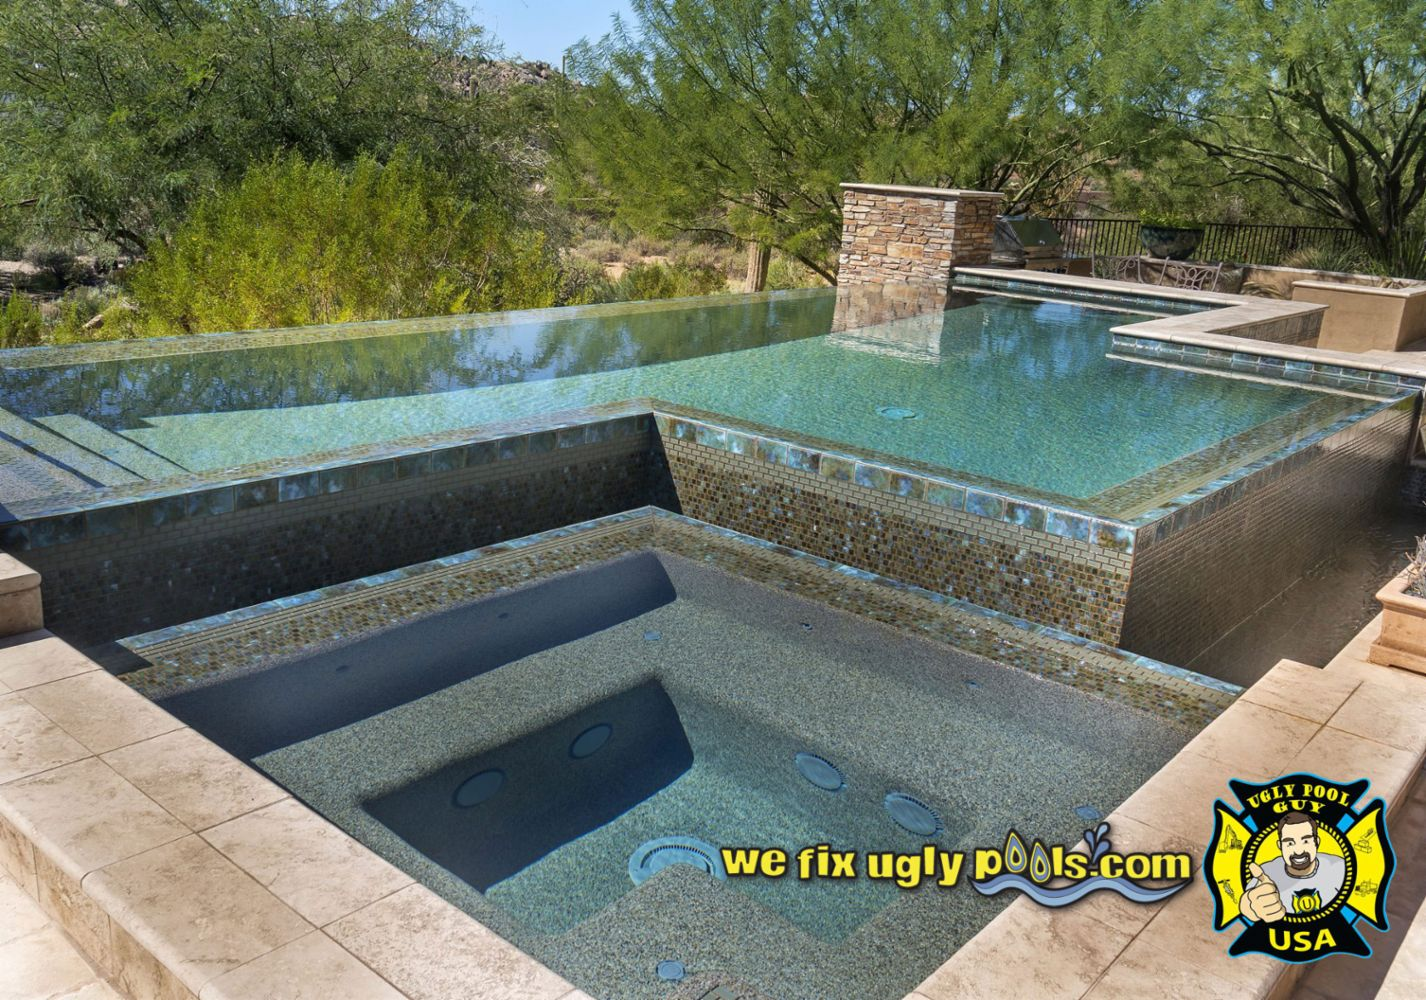 Pool Remodeling And Repair In Peoria Az We Fix Ugly Pools